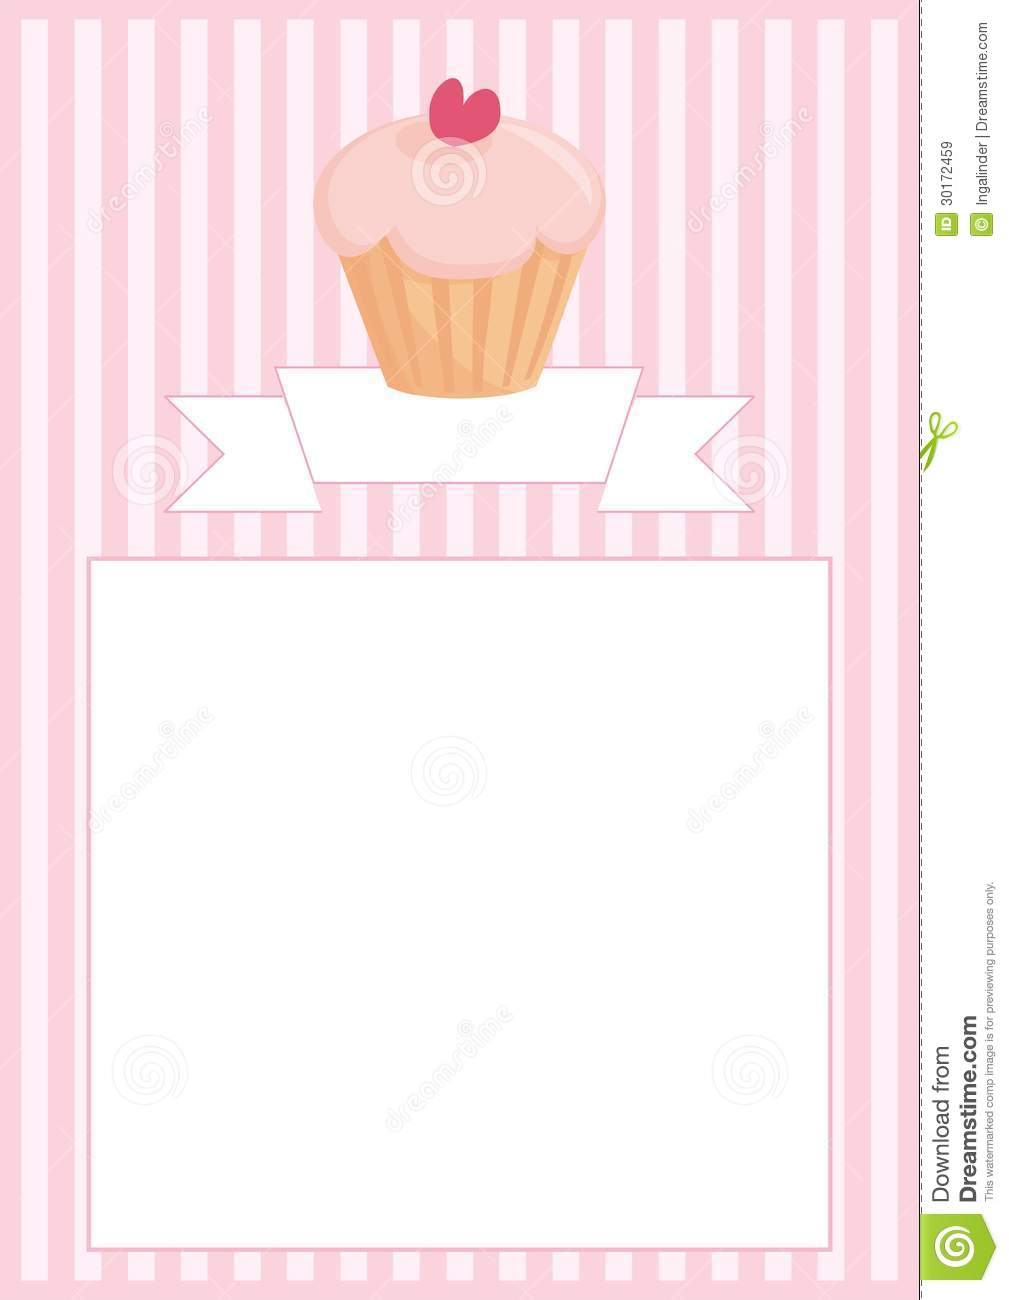 Sweet Vector Retro Cupcake On Pink Vintage Strips Royalty Free Stock ...